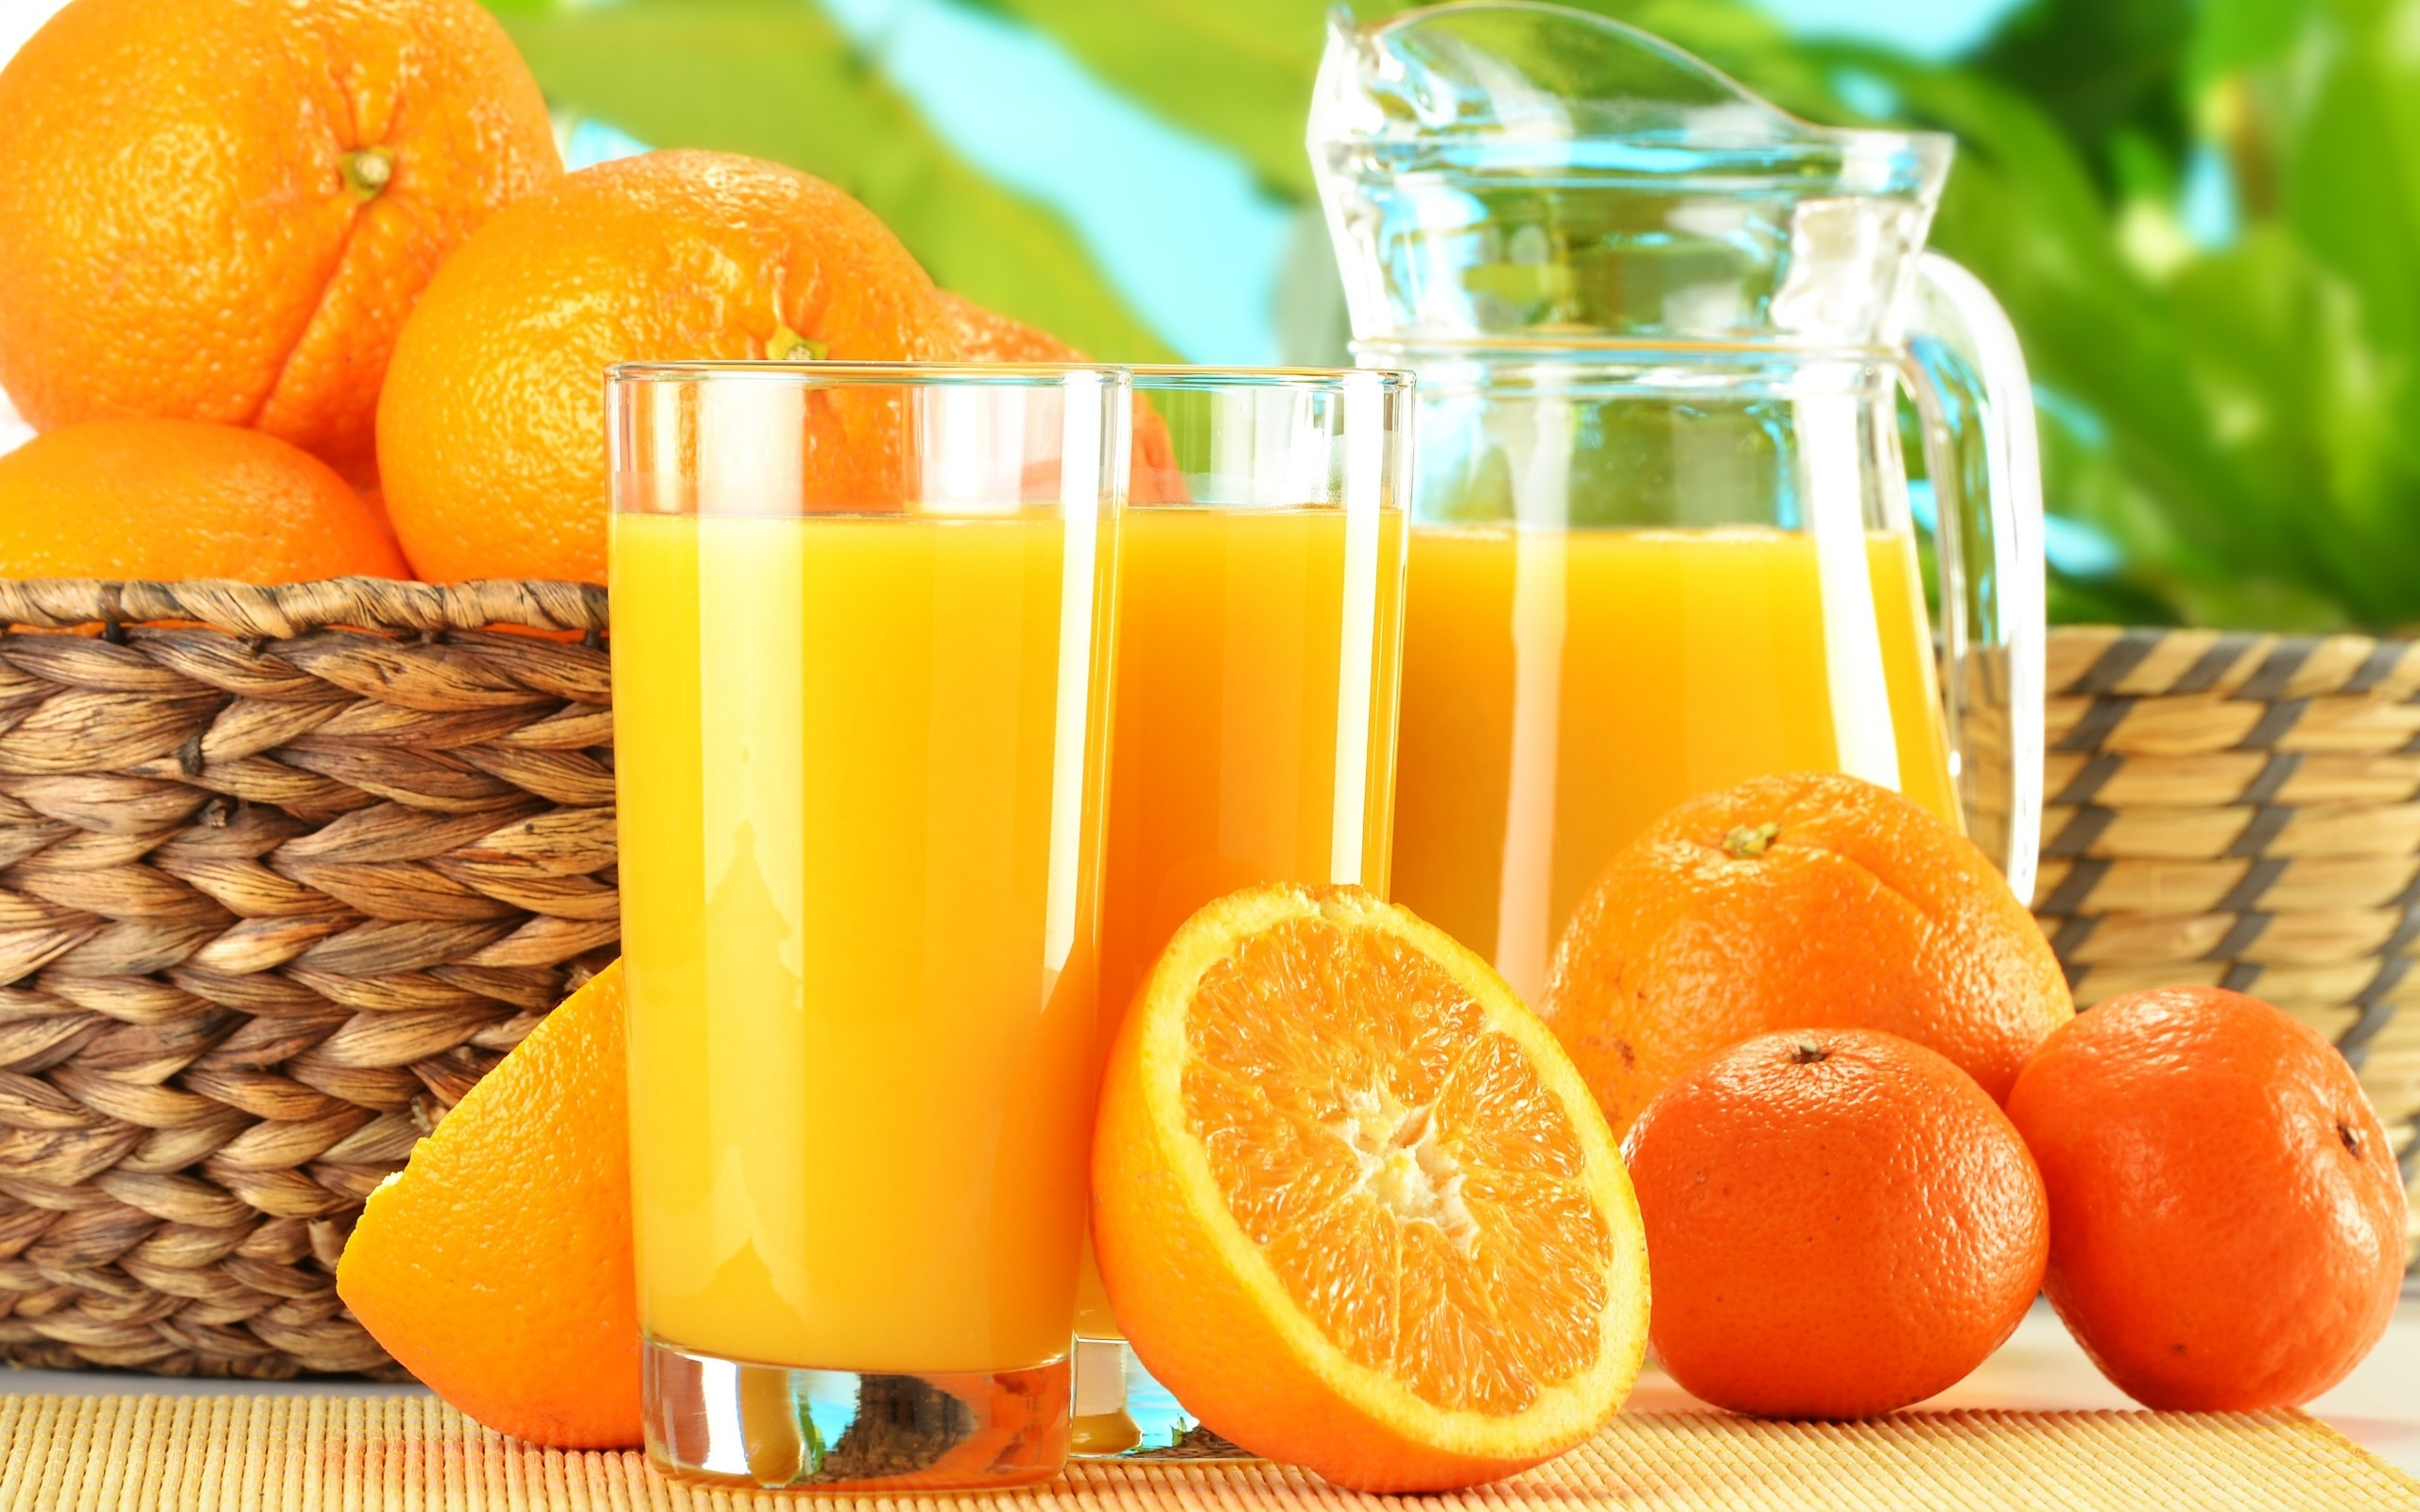 Squeeze Orange Juice Glass Wallpapers   2560x1600   885509 2560x1600